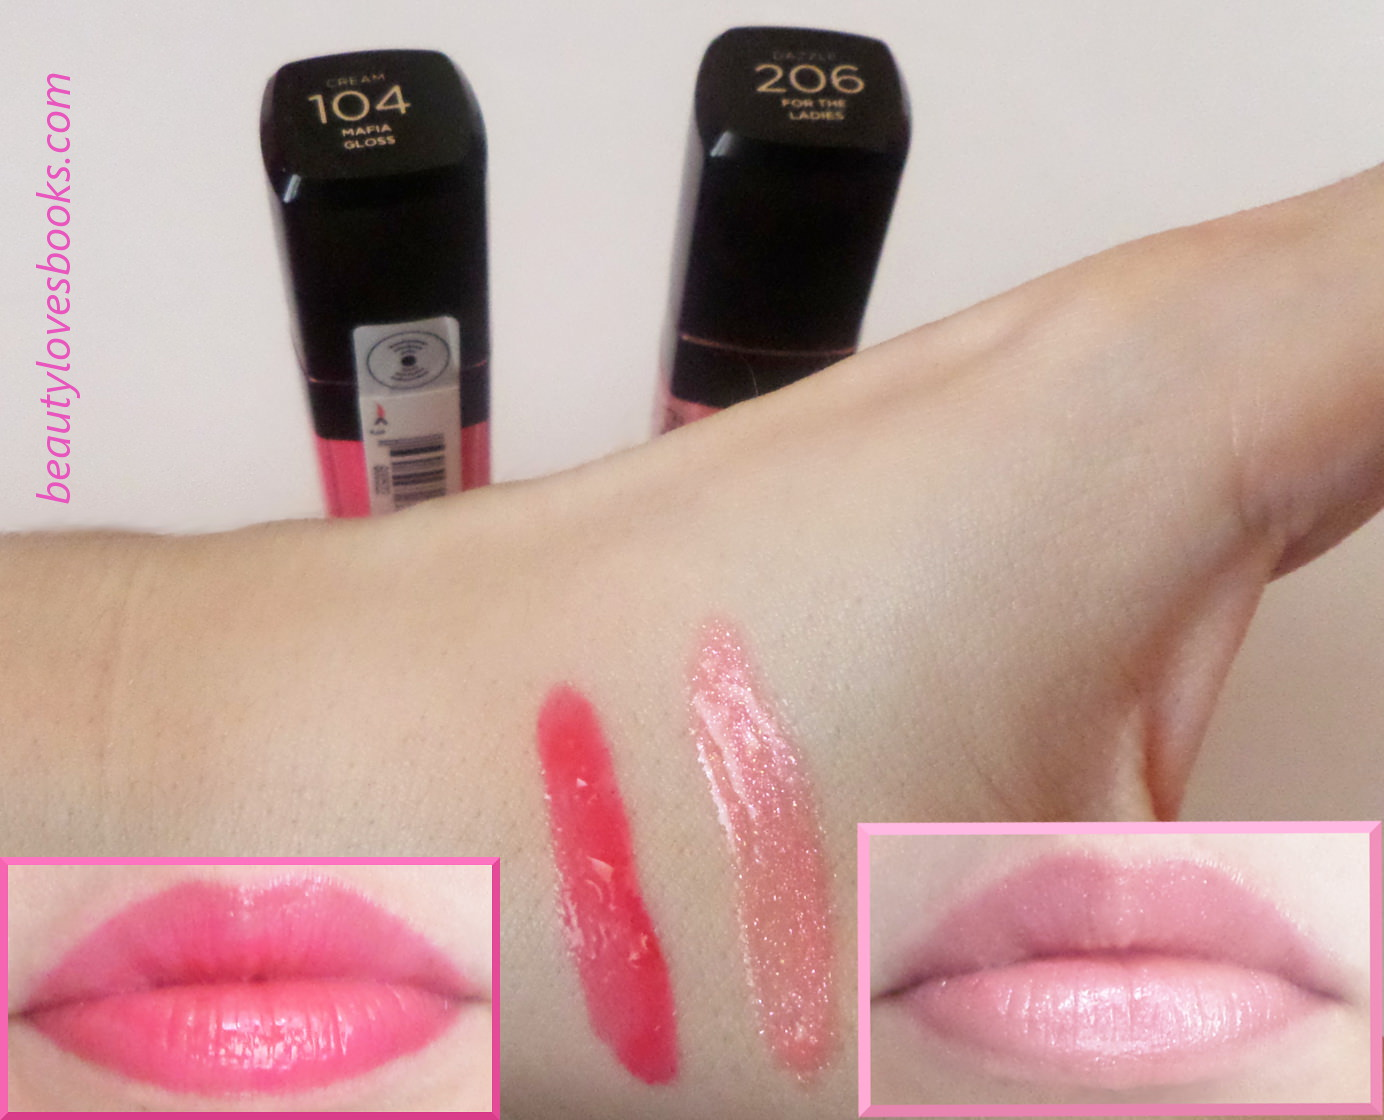 L'Oreal Infallable Mega gloss in 104 Mafia Gloss and 206 For the ladies